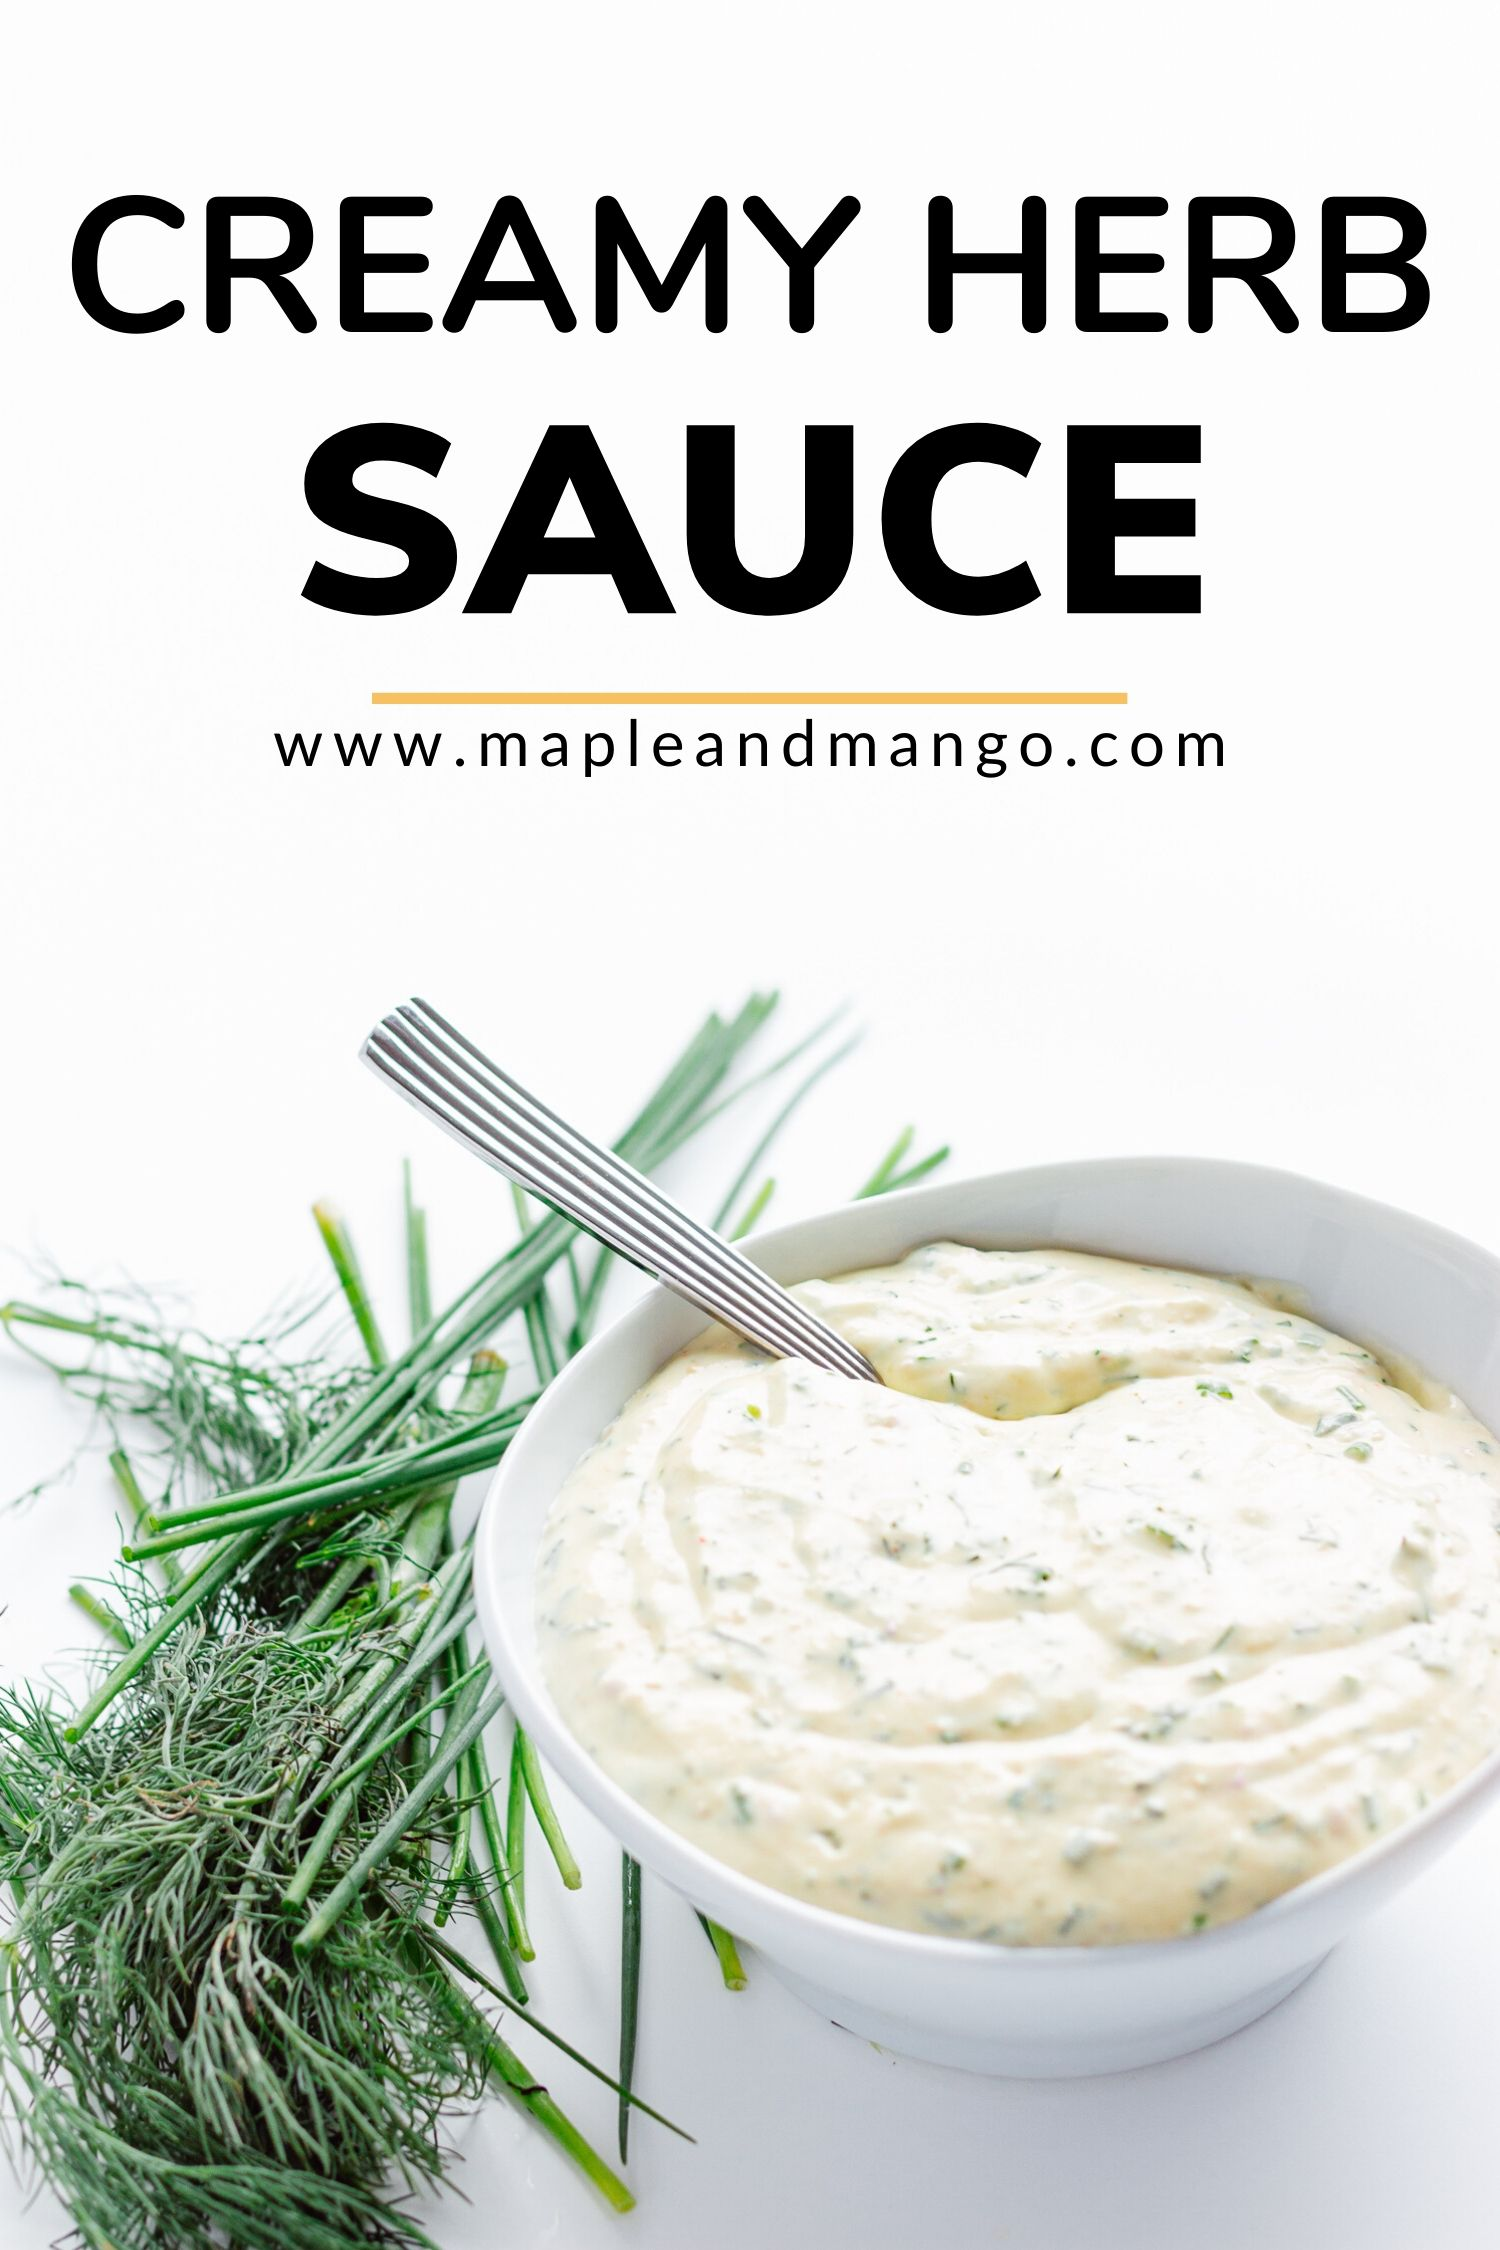 Pinterest image for Creamy Herb Sauce